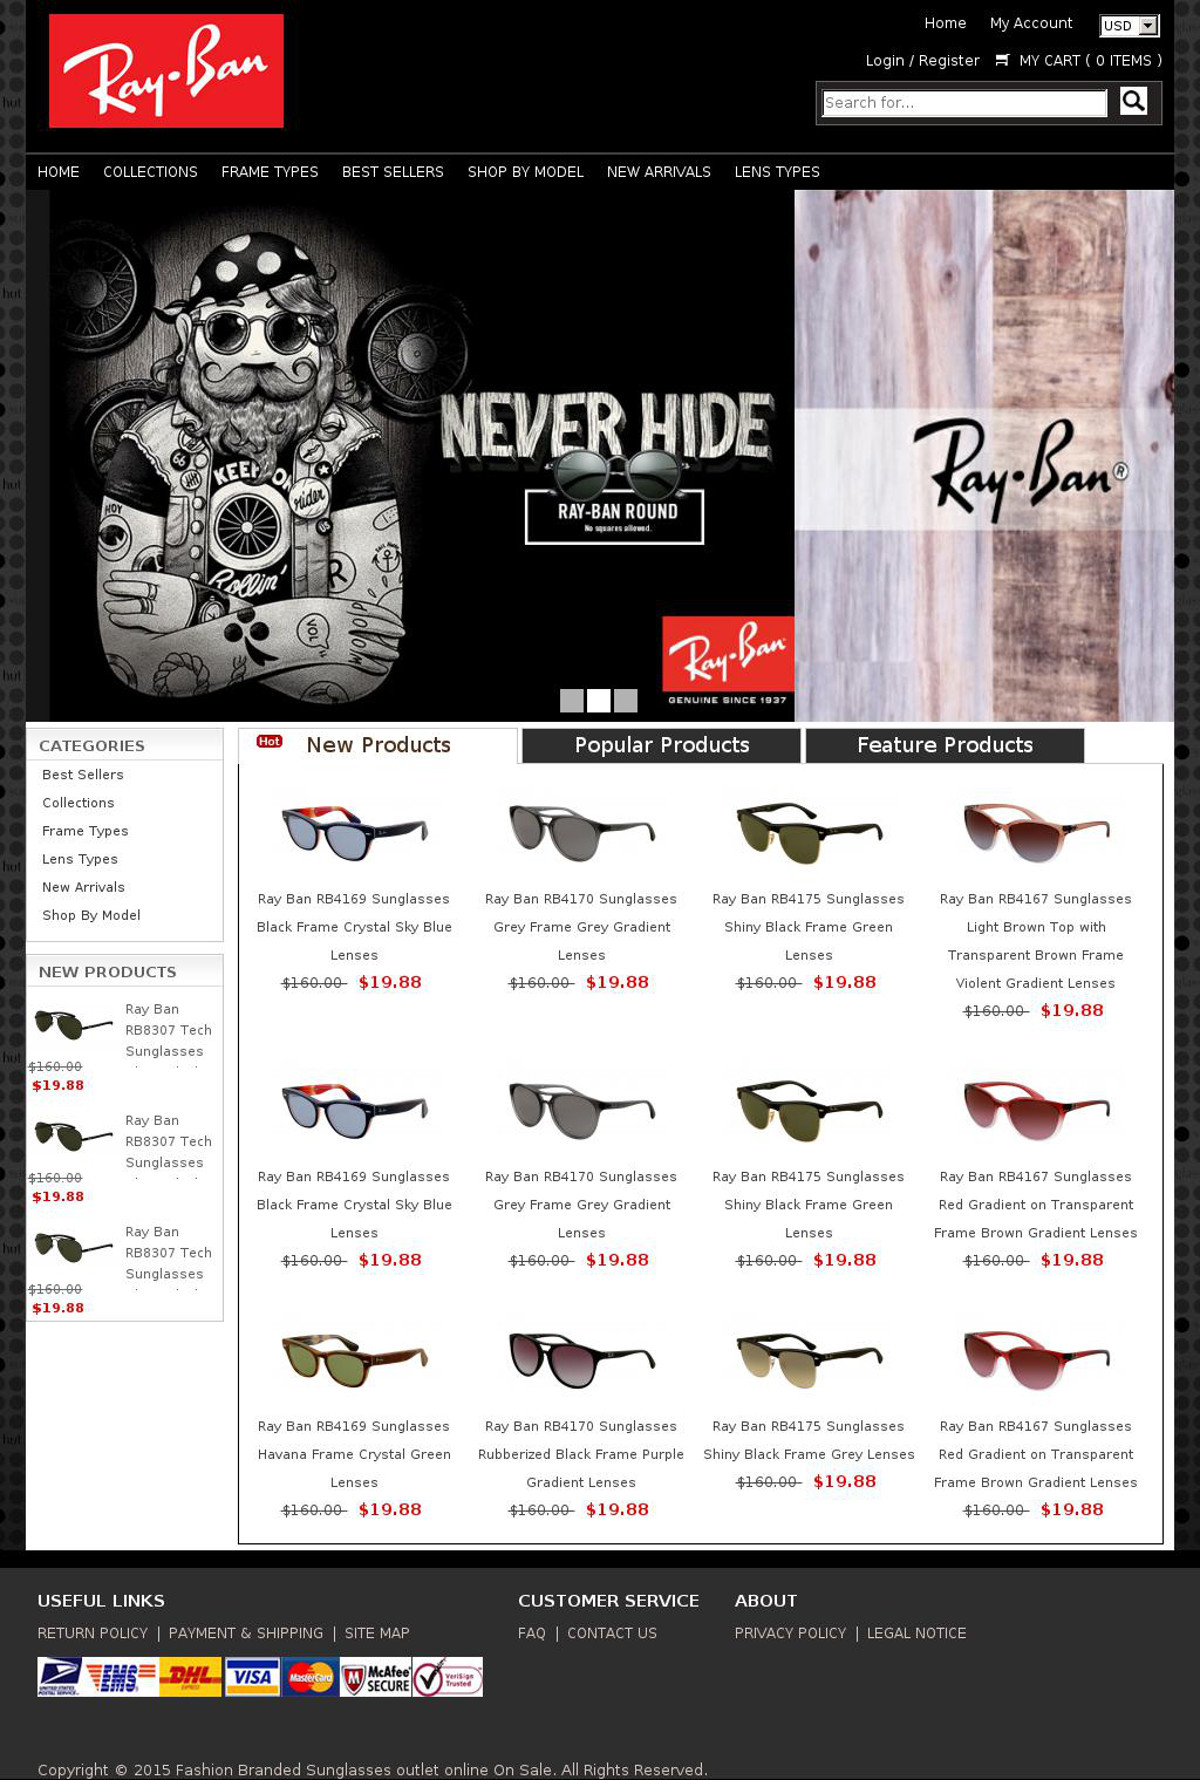 ray ban website  Fake Ray-Ban Sunglasses Online Email - MailShark